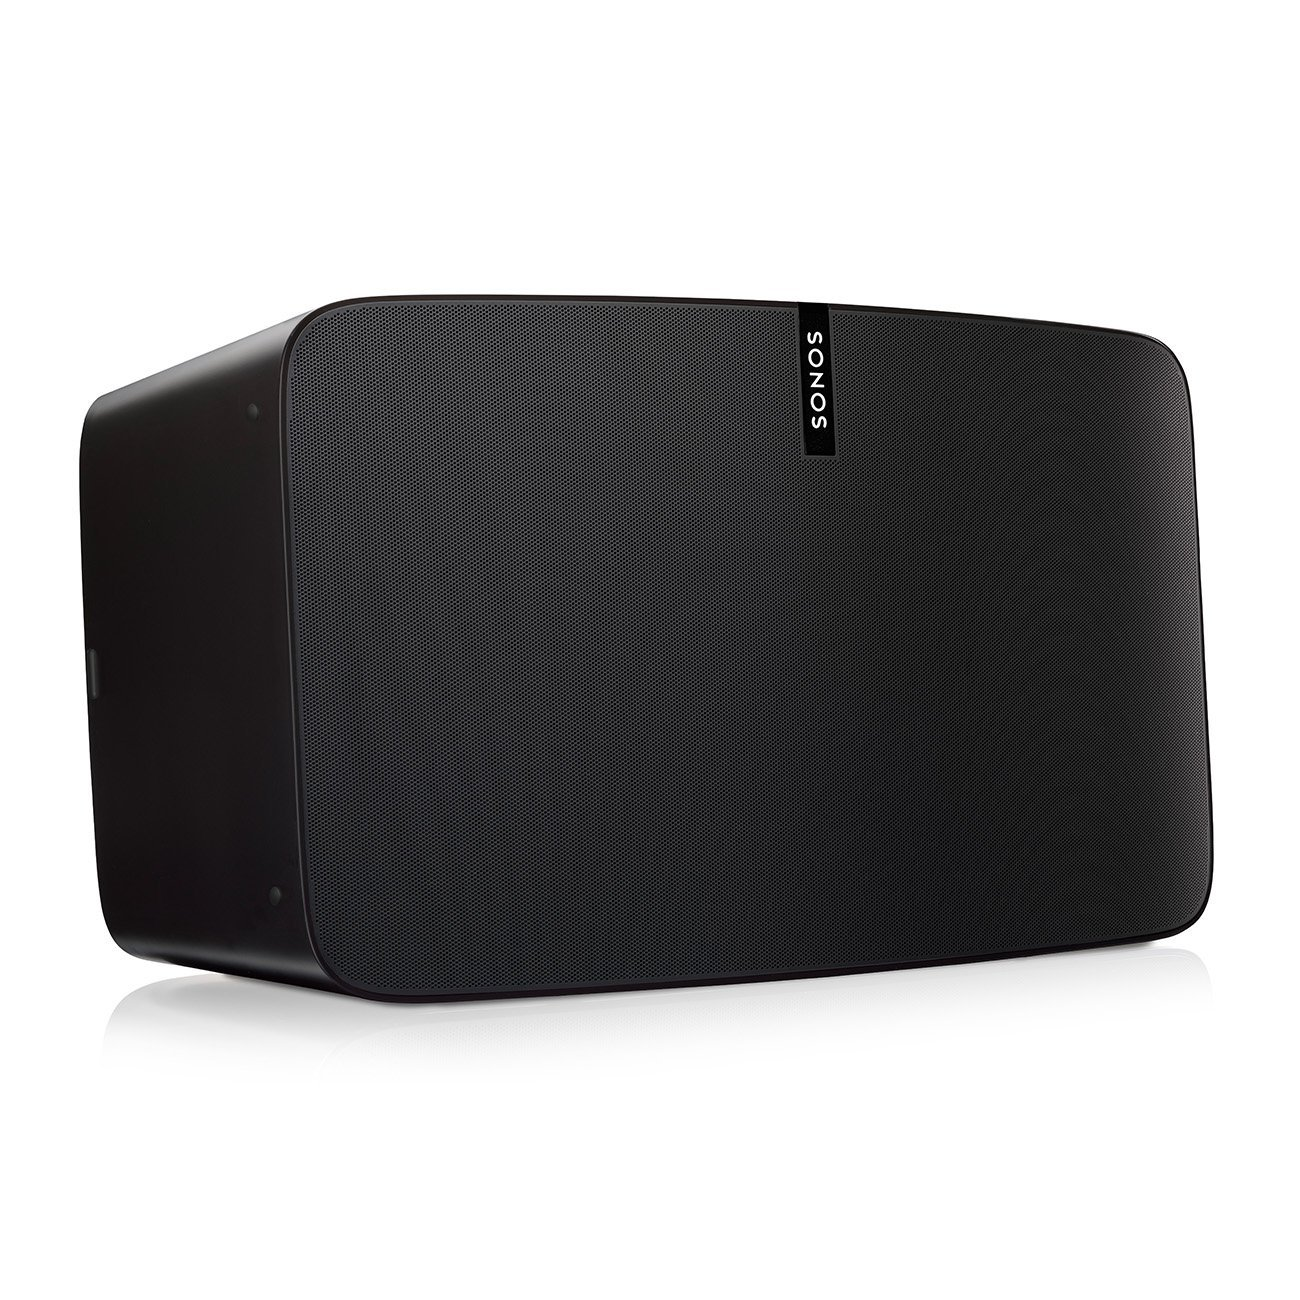 Sonos for your Smart Home